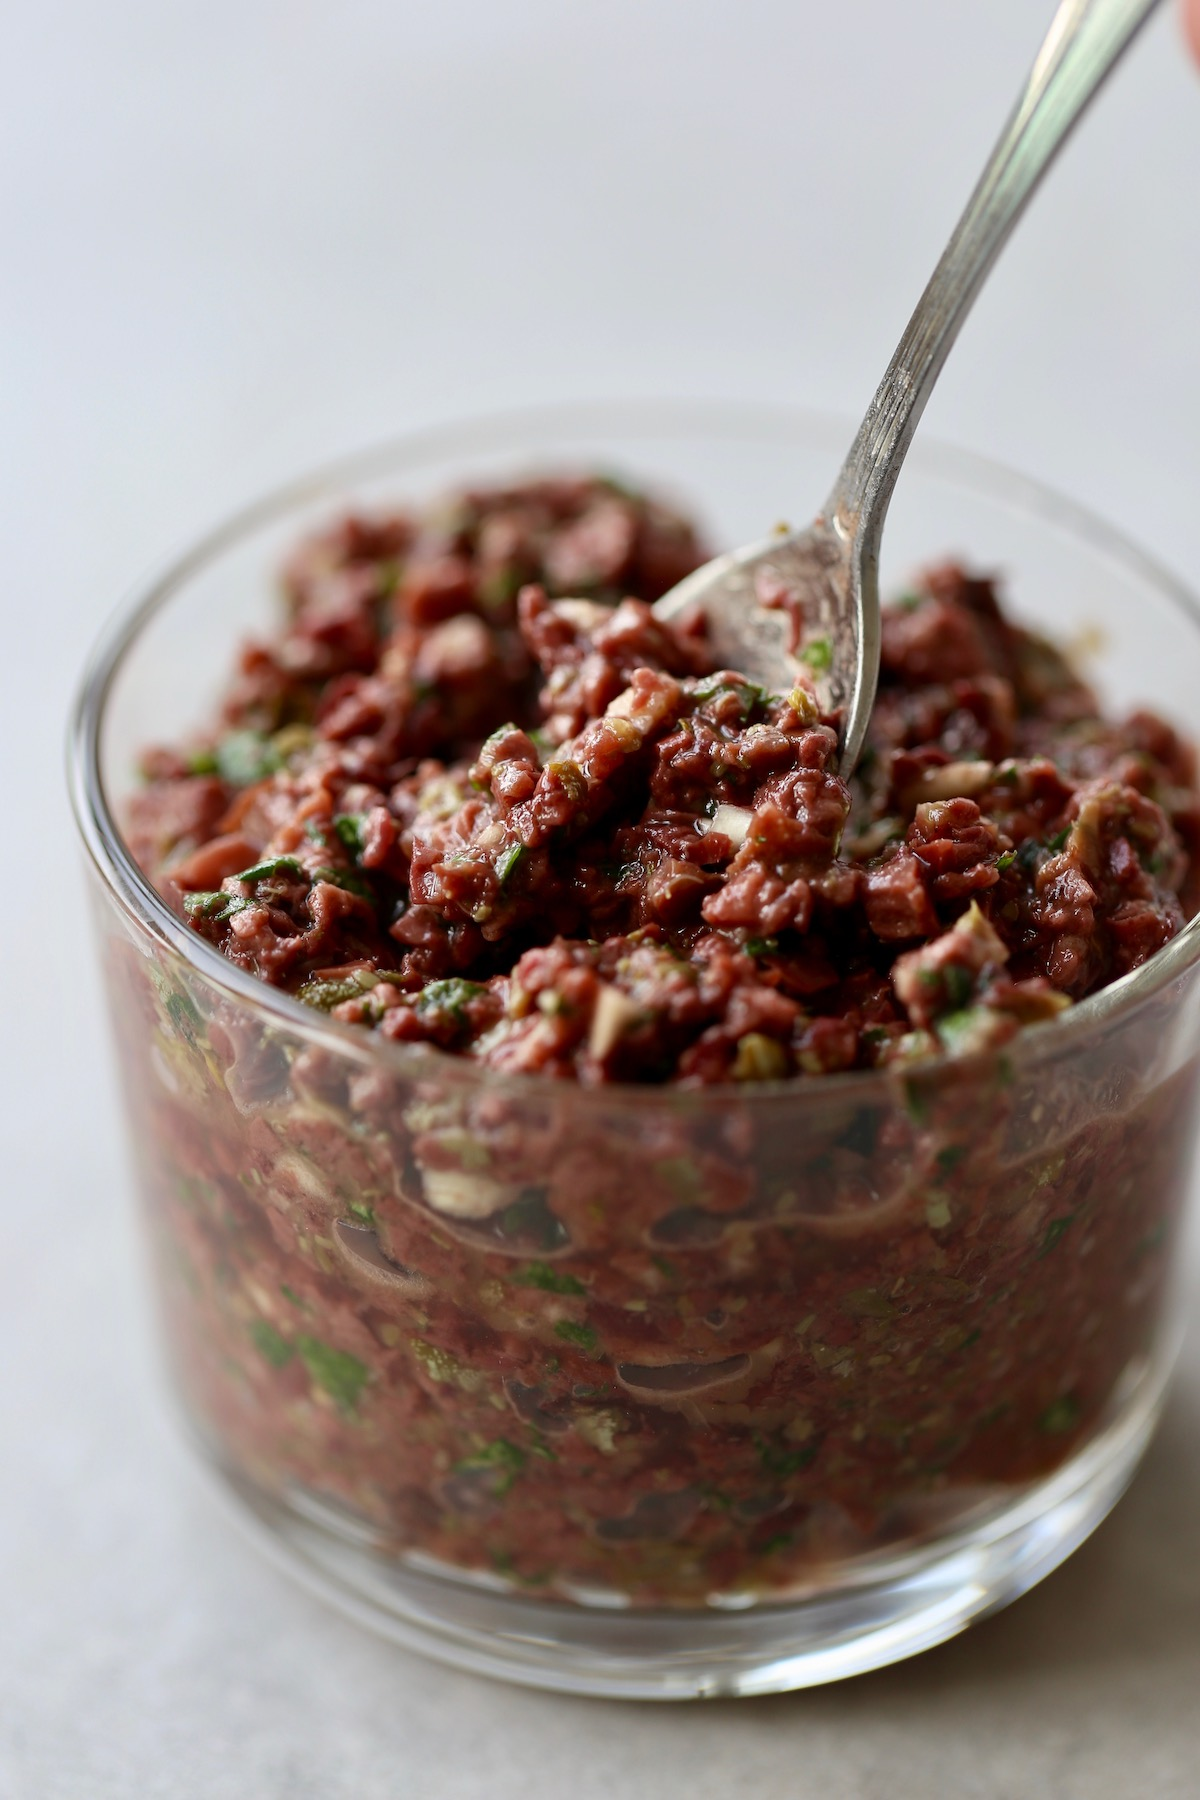 Homemade tapenade in a clear glass